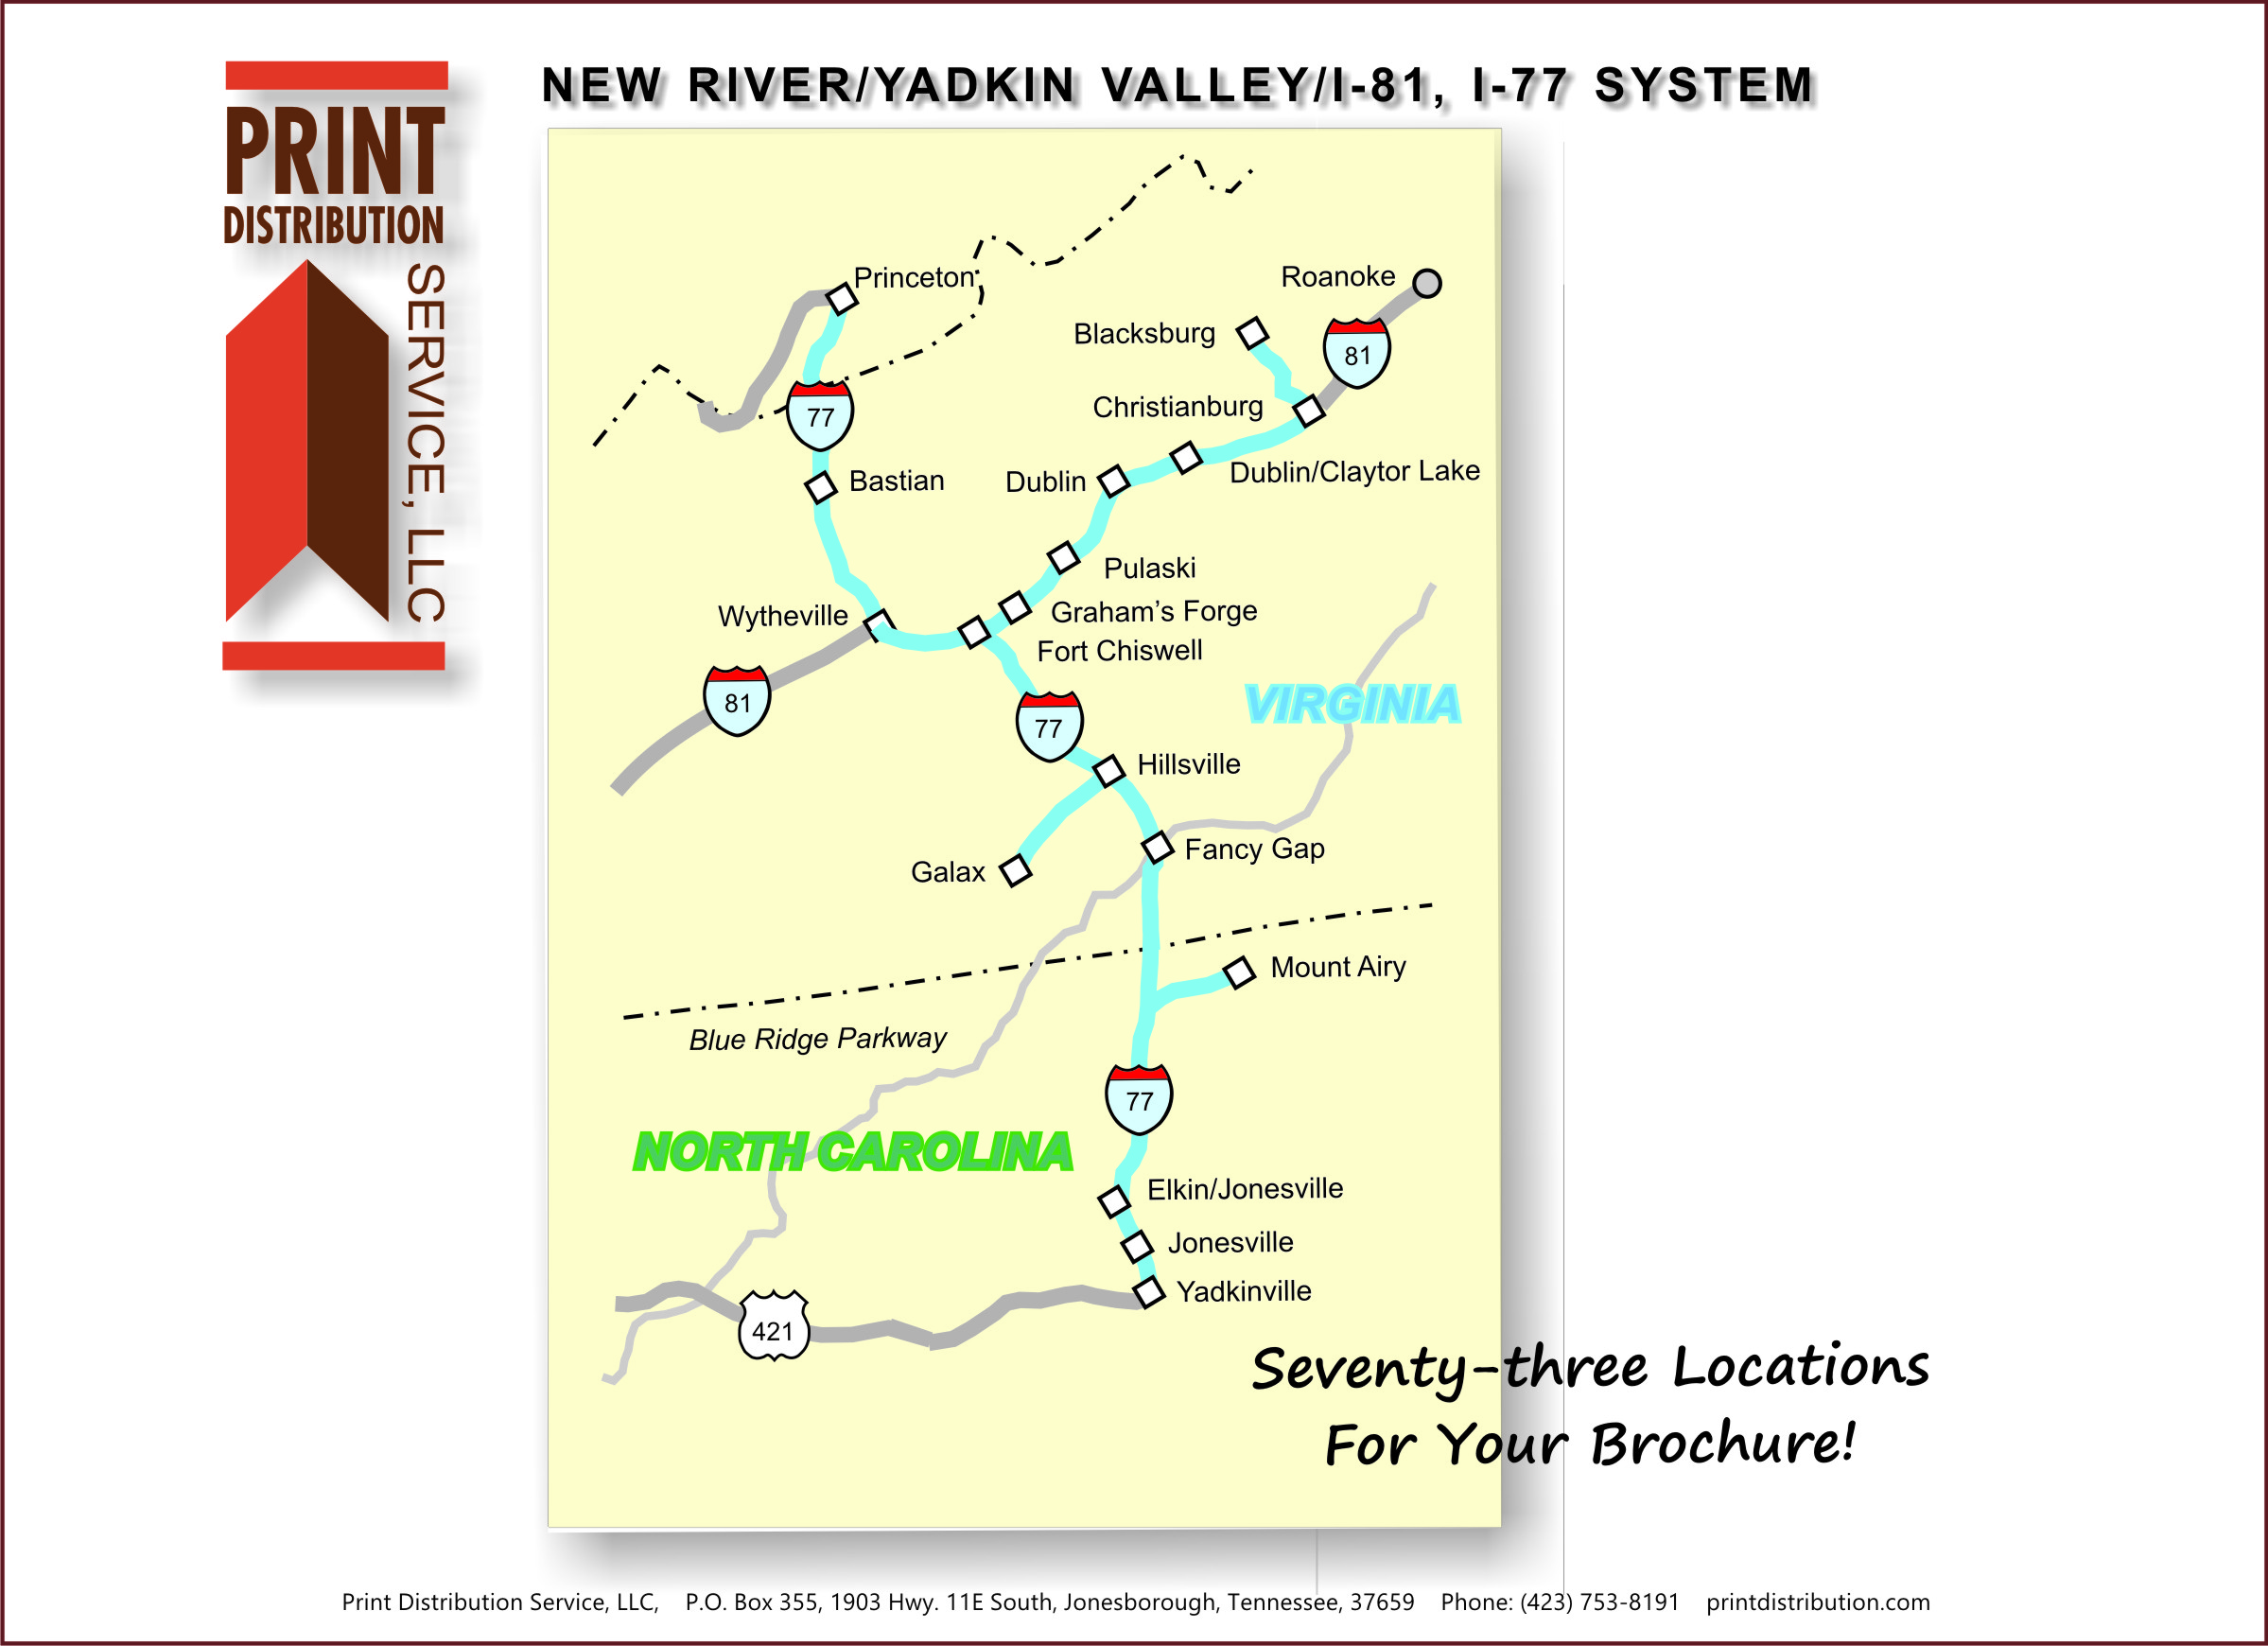 New River Valley/ Yadkin Valley System